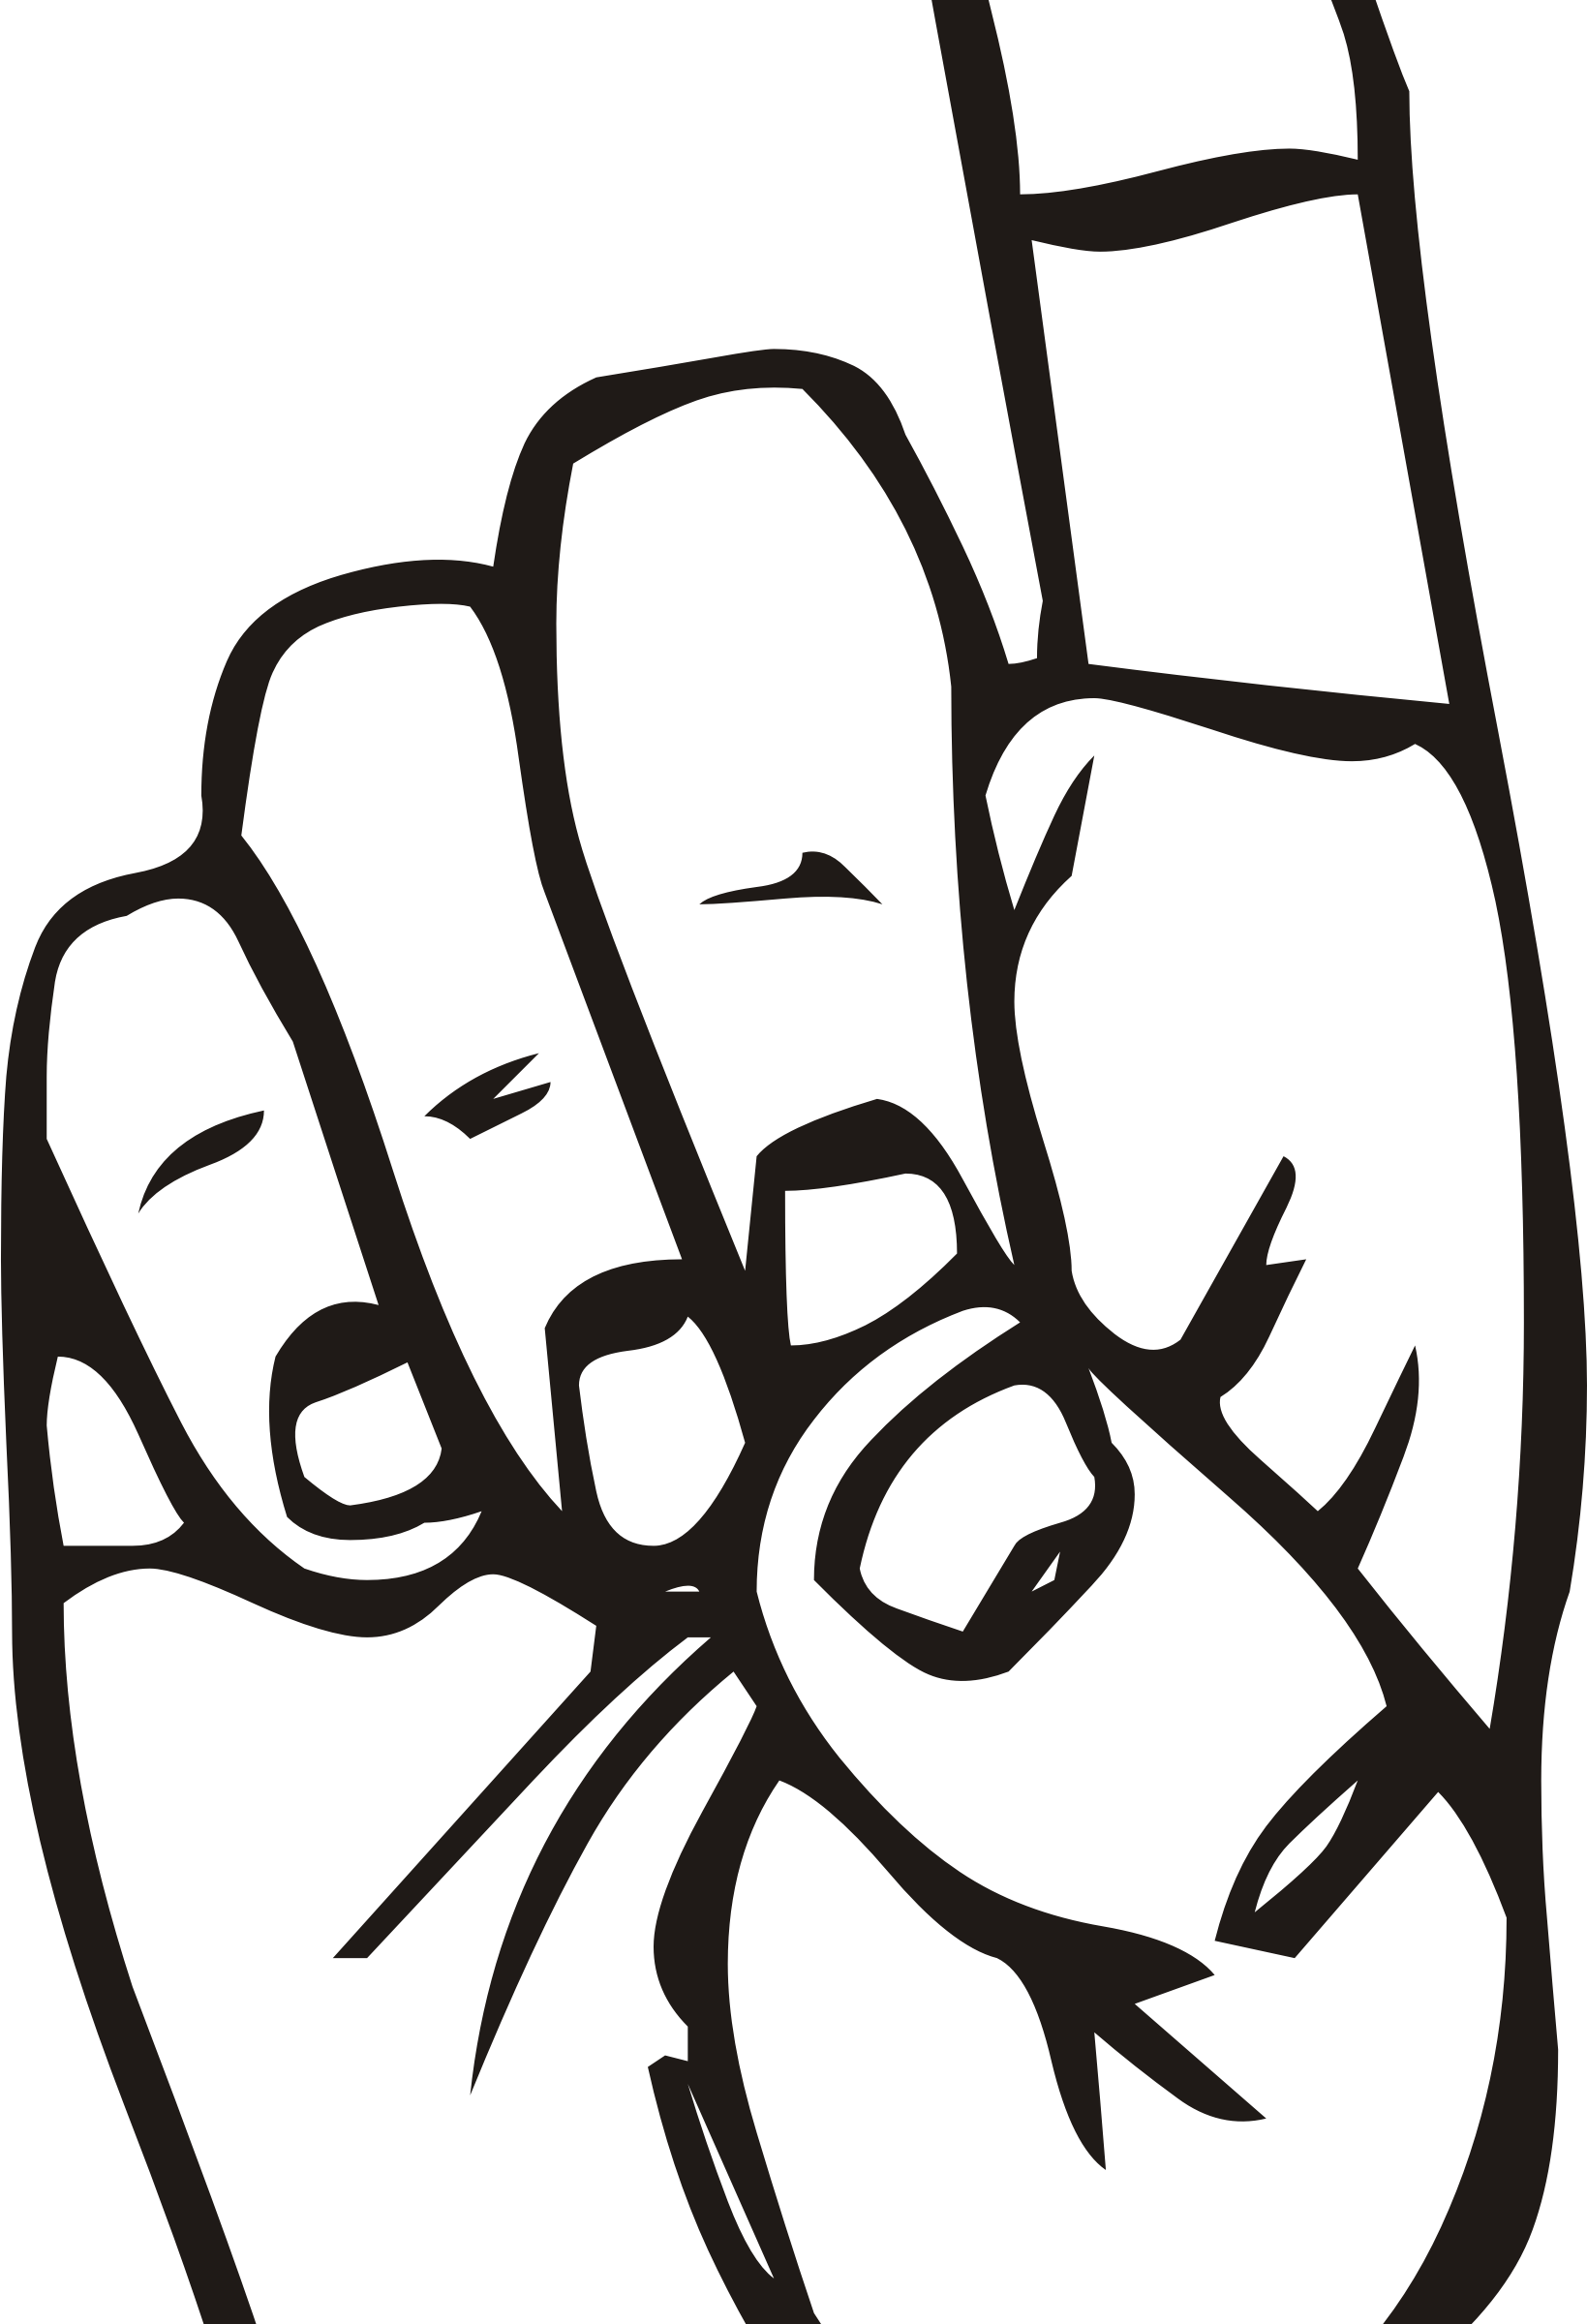 Clipart - Sign language D, finger pointing